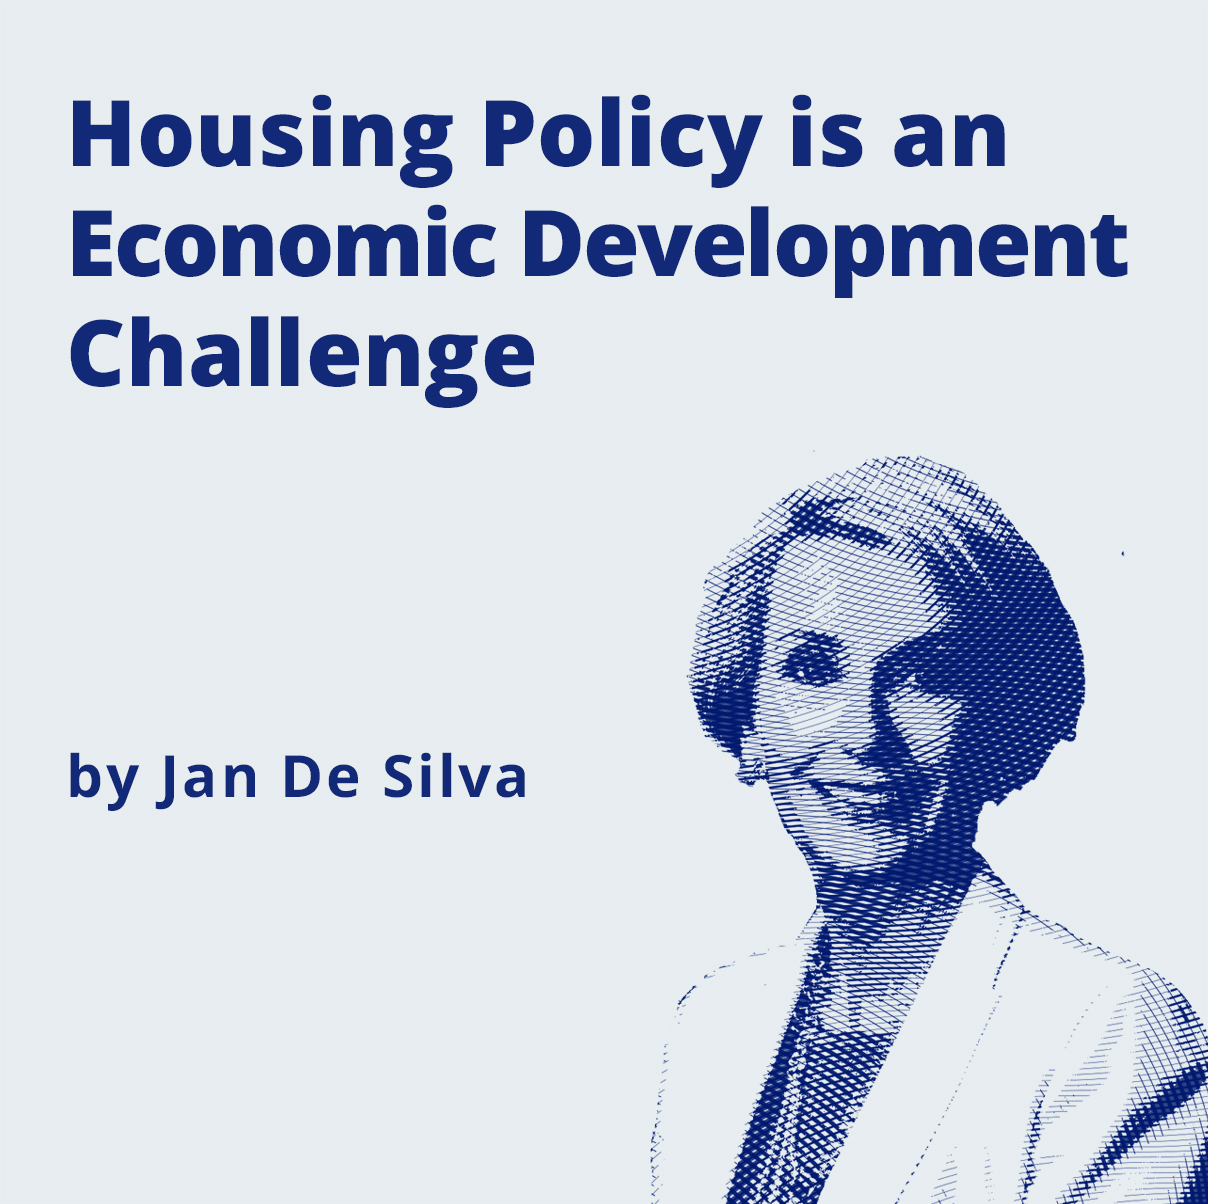 Housing Policy is an Economic Development Challenge by Jan De Silva